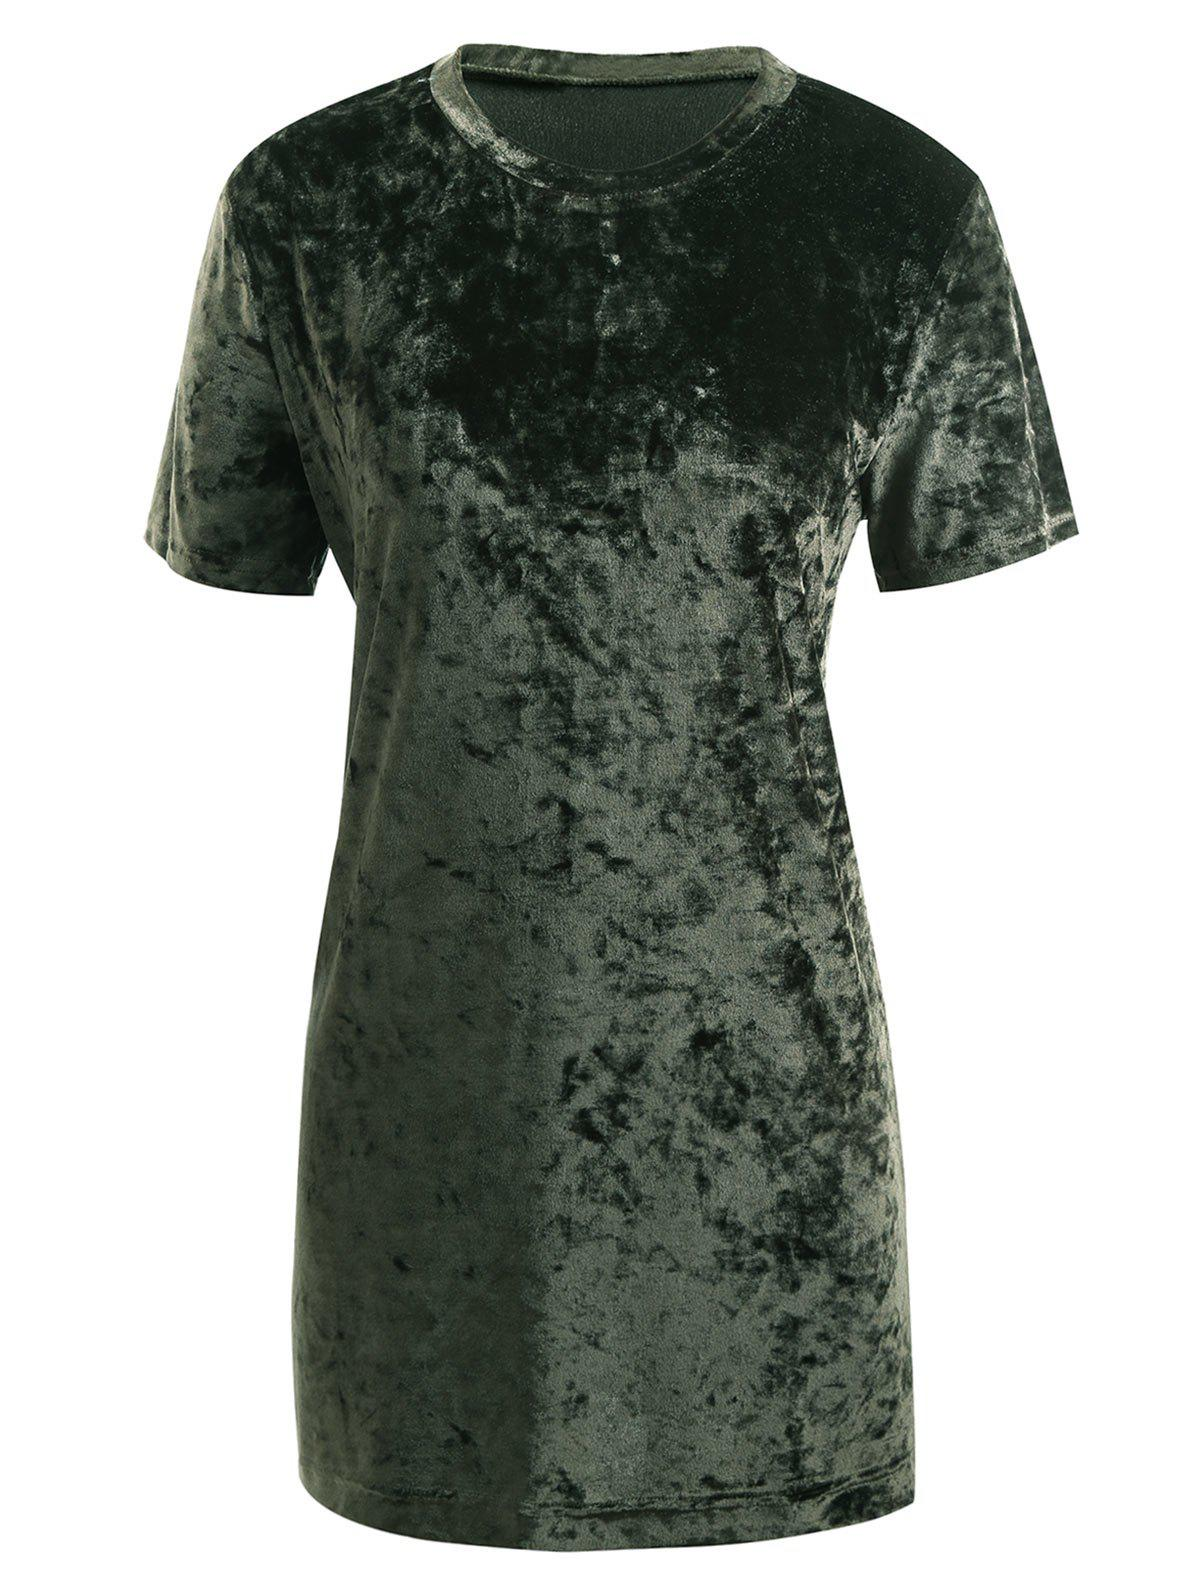 Gamiss Womens Crushed Velvet O Neck Casual Short Sleeve Loose T-Shirt Dress - ARMY GREEN XL